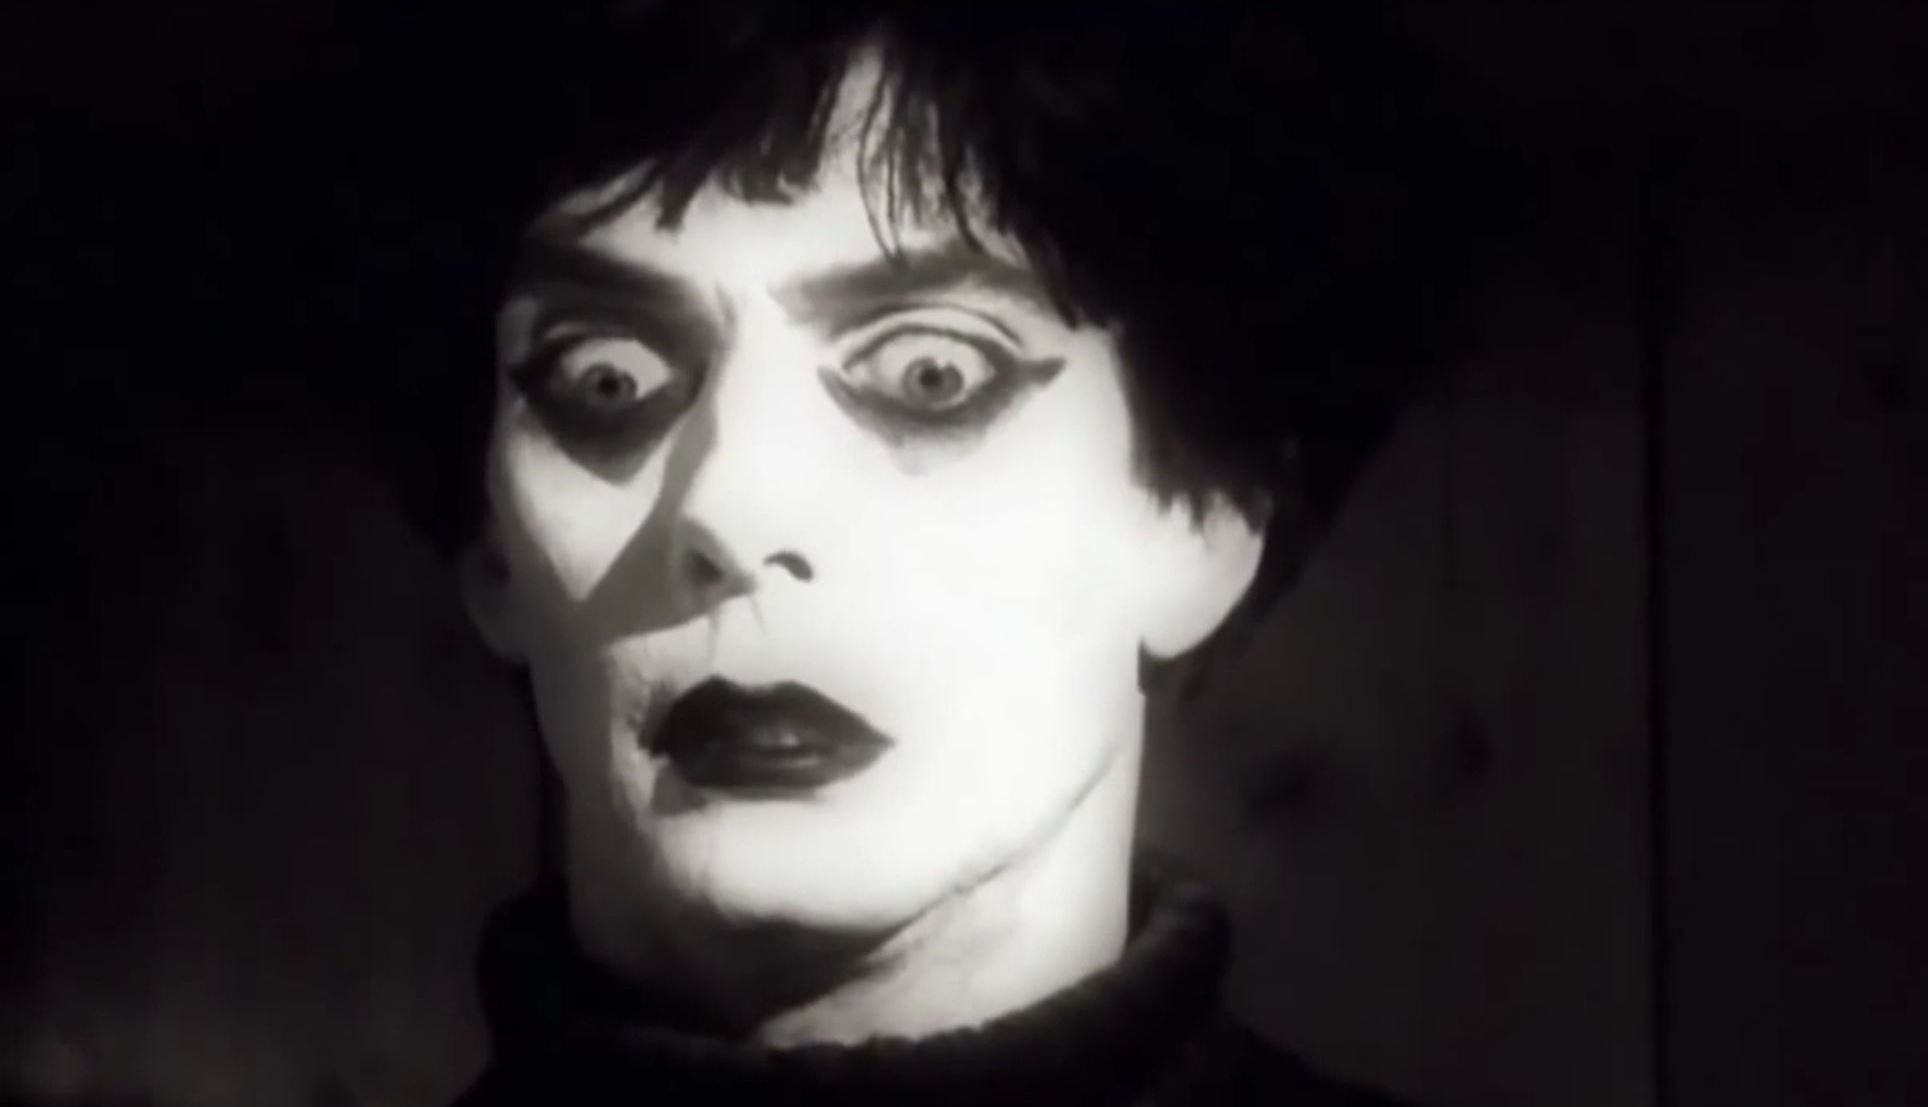 Doug Jones as Cesare the Somnambulist in The Cabinet of Dr. Caligari (2005)